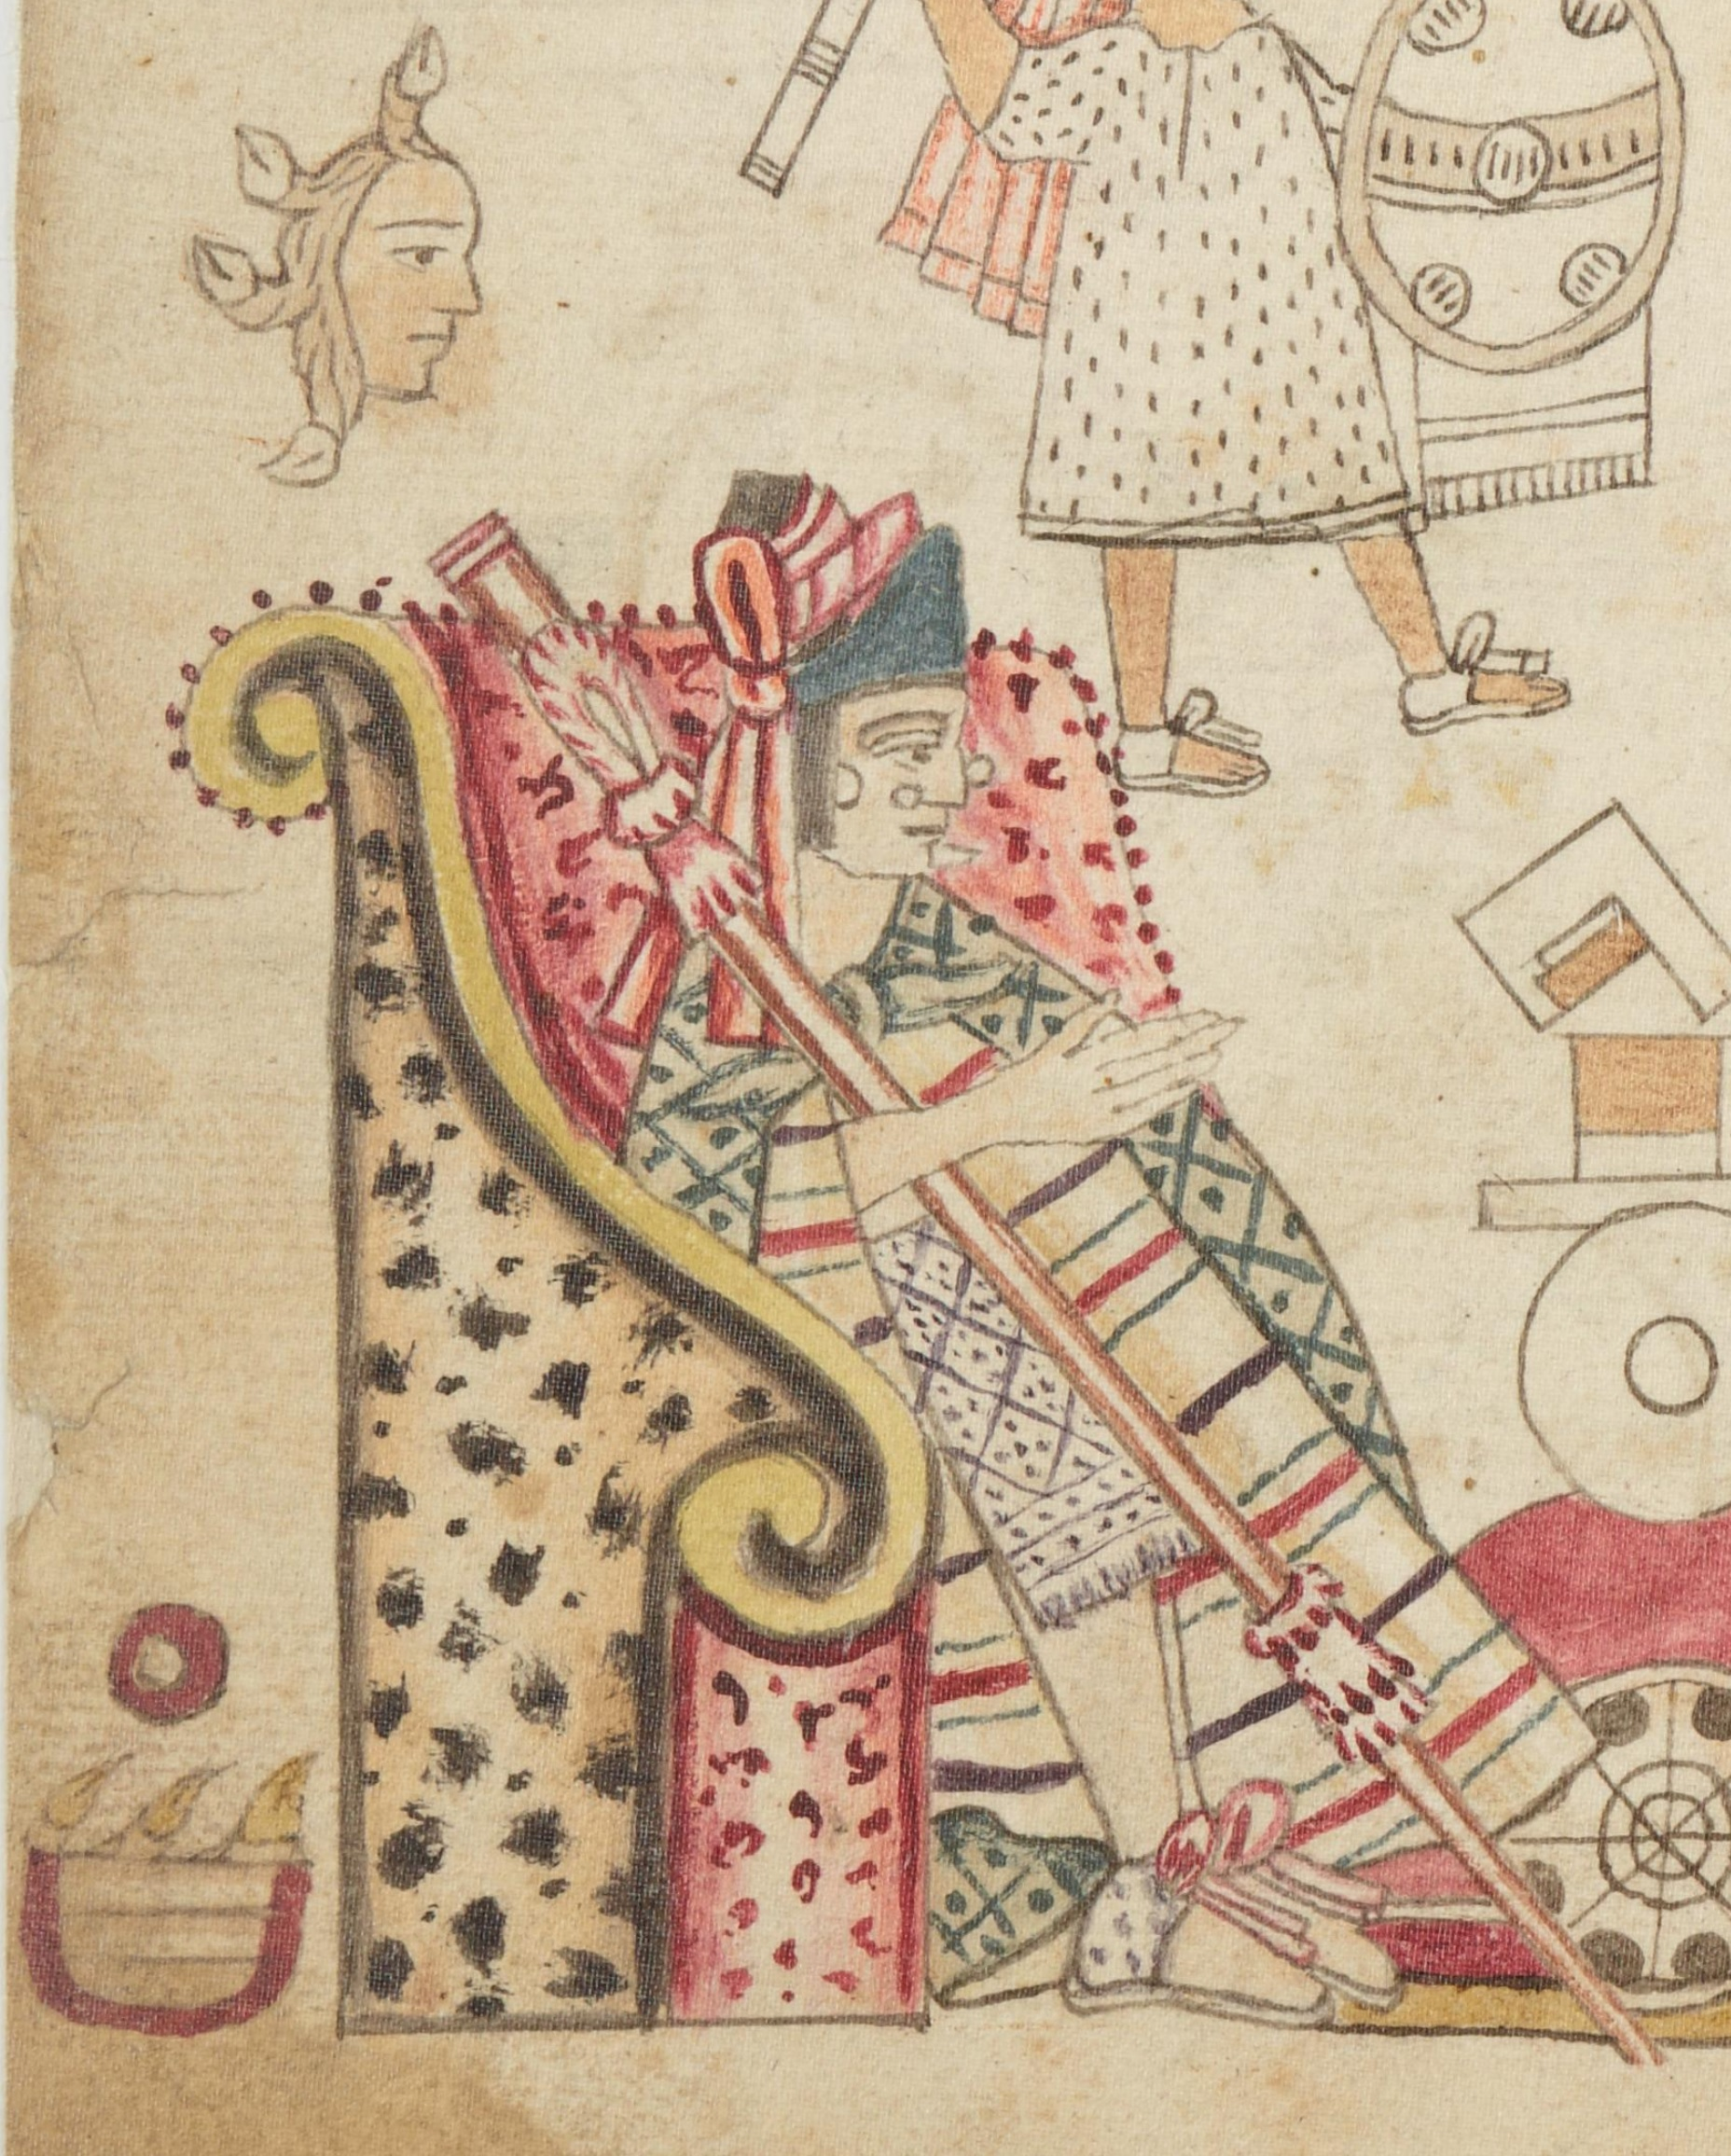 Axayacatl 6th tlatoani of Tenochtitlan and ruler of the Aztec Triple Alliance